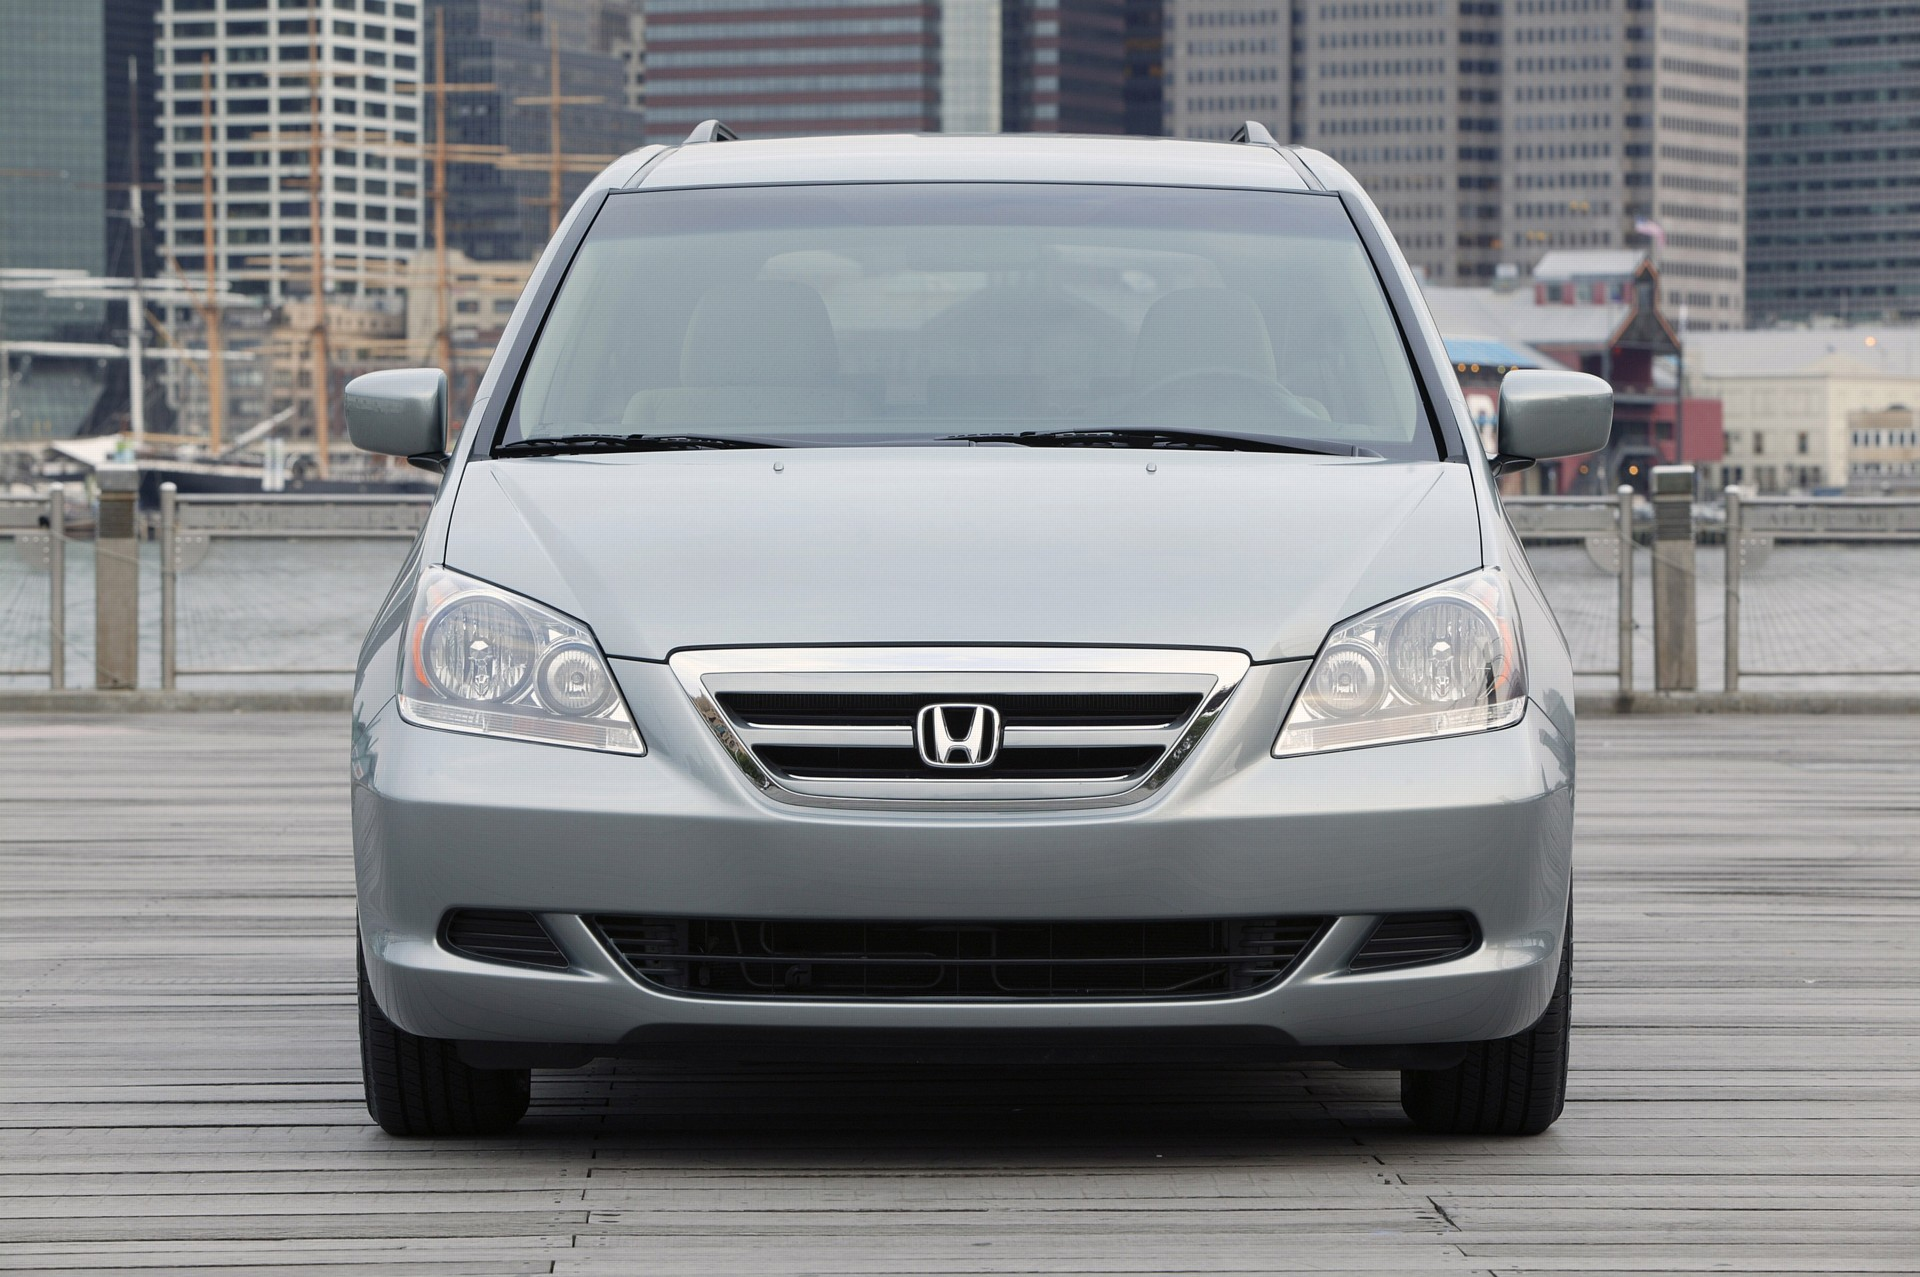 Monthly Calendar Of Events : Honda odyssey pictures history value research